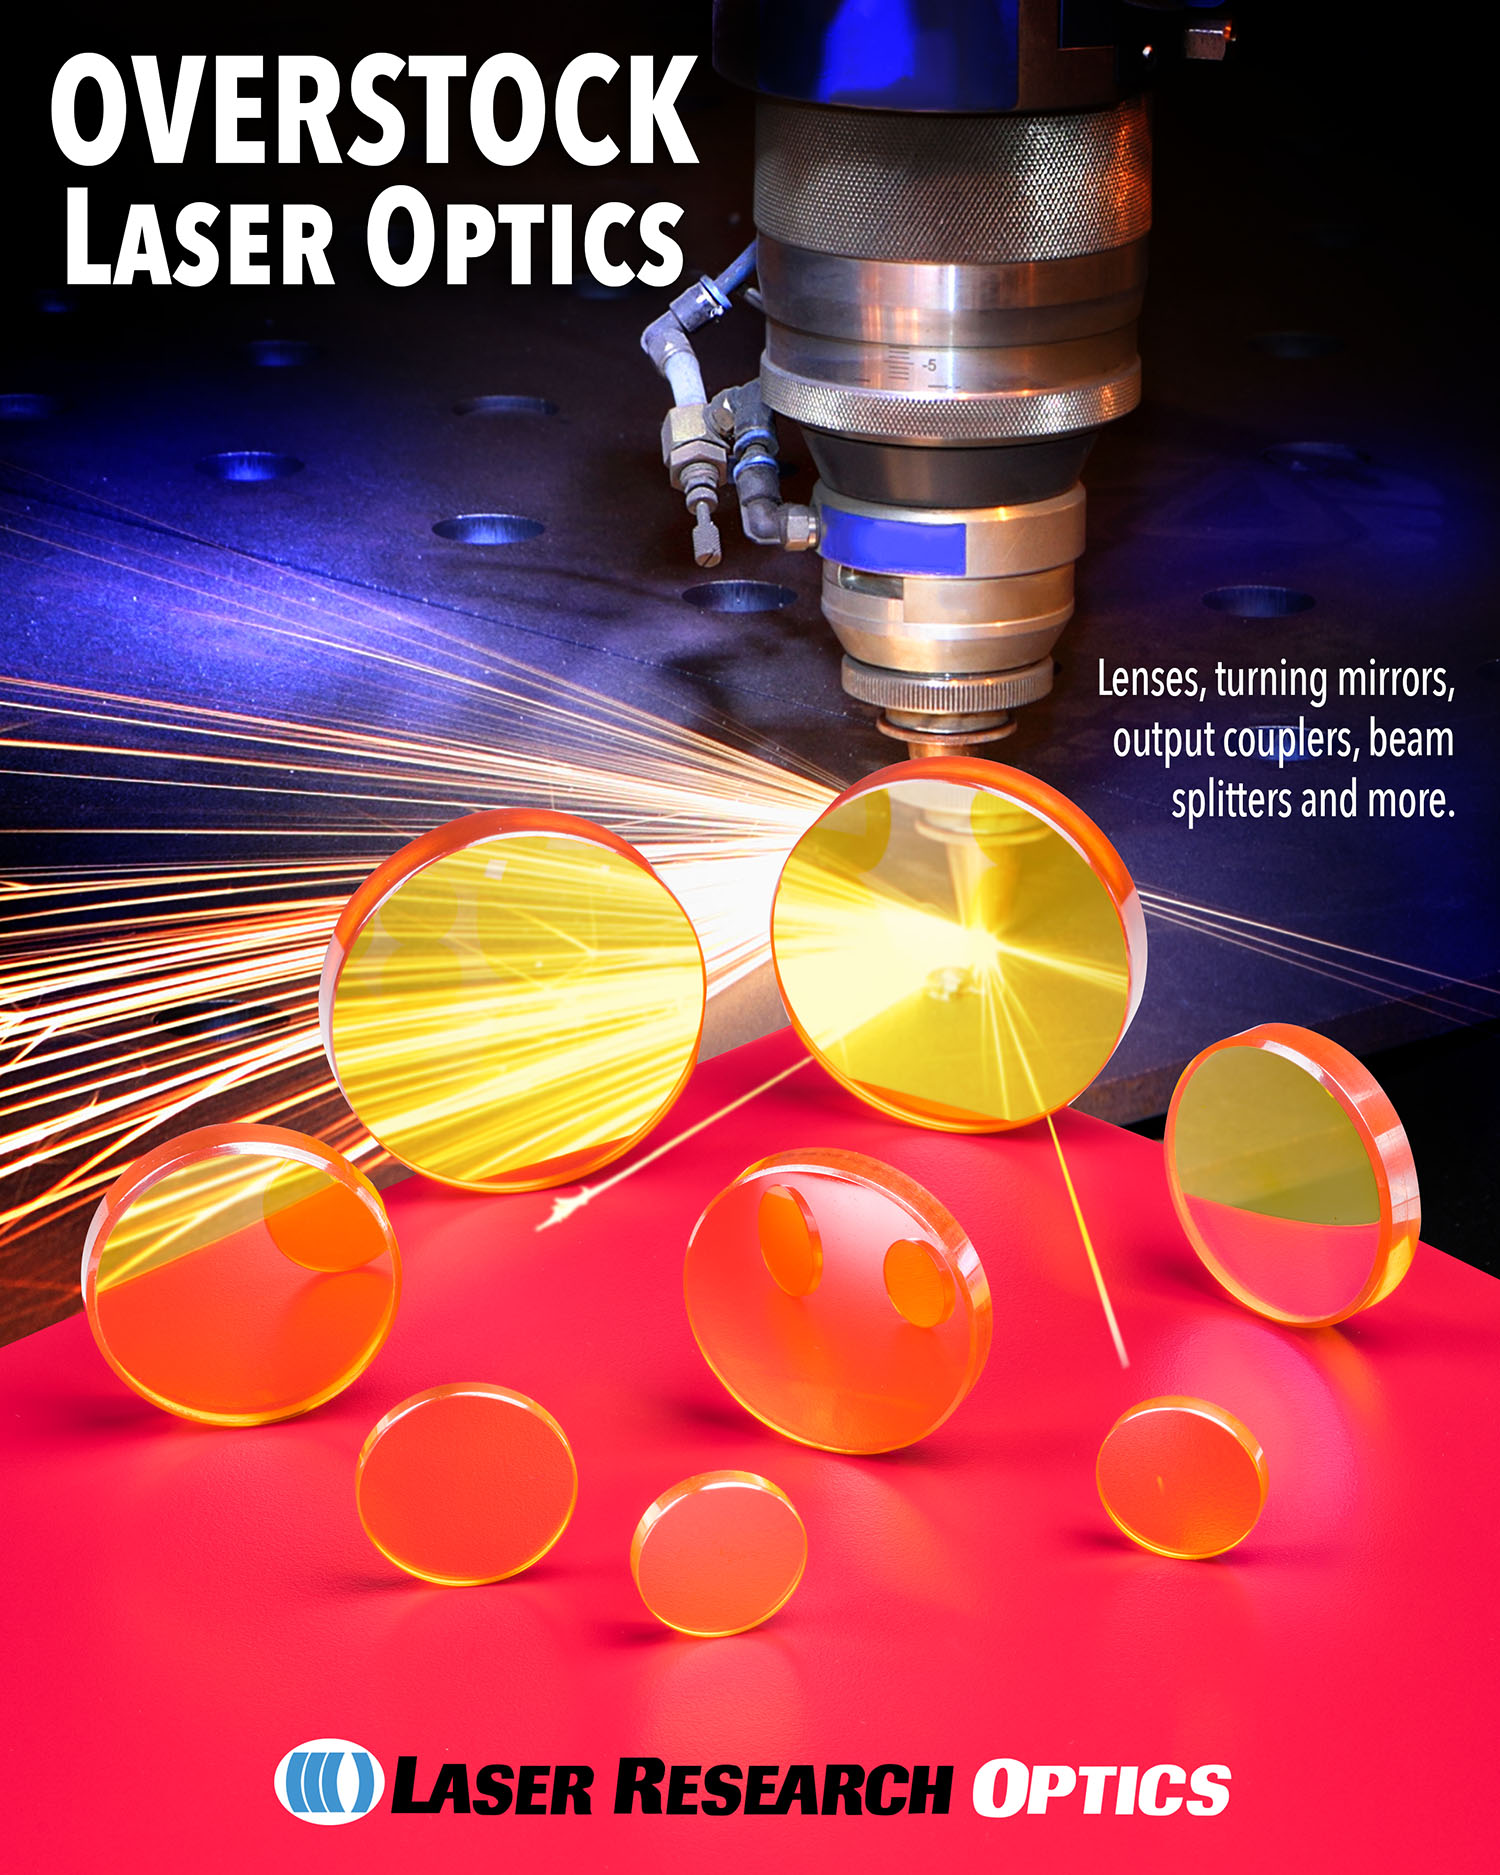 Overstock laser optics